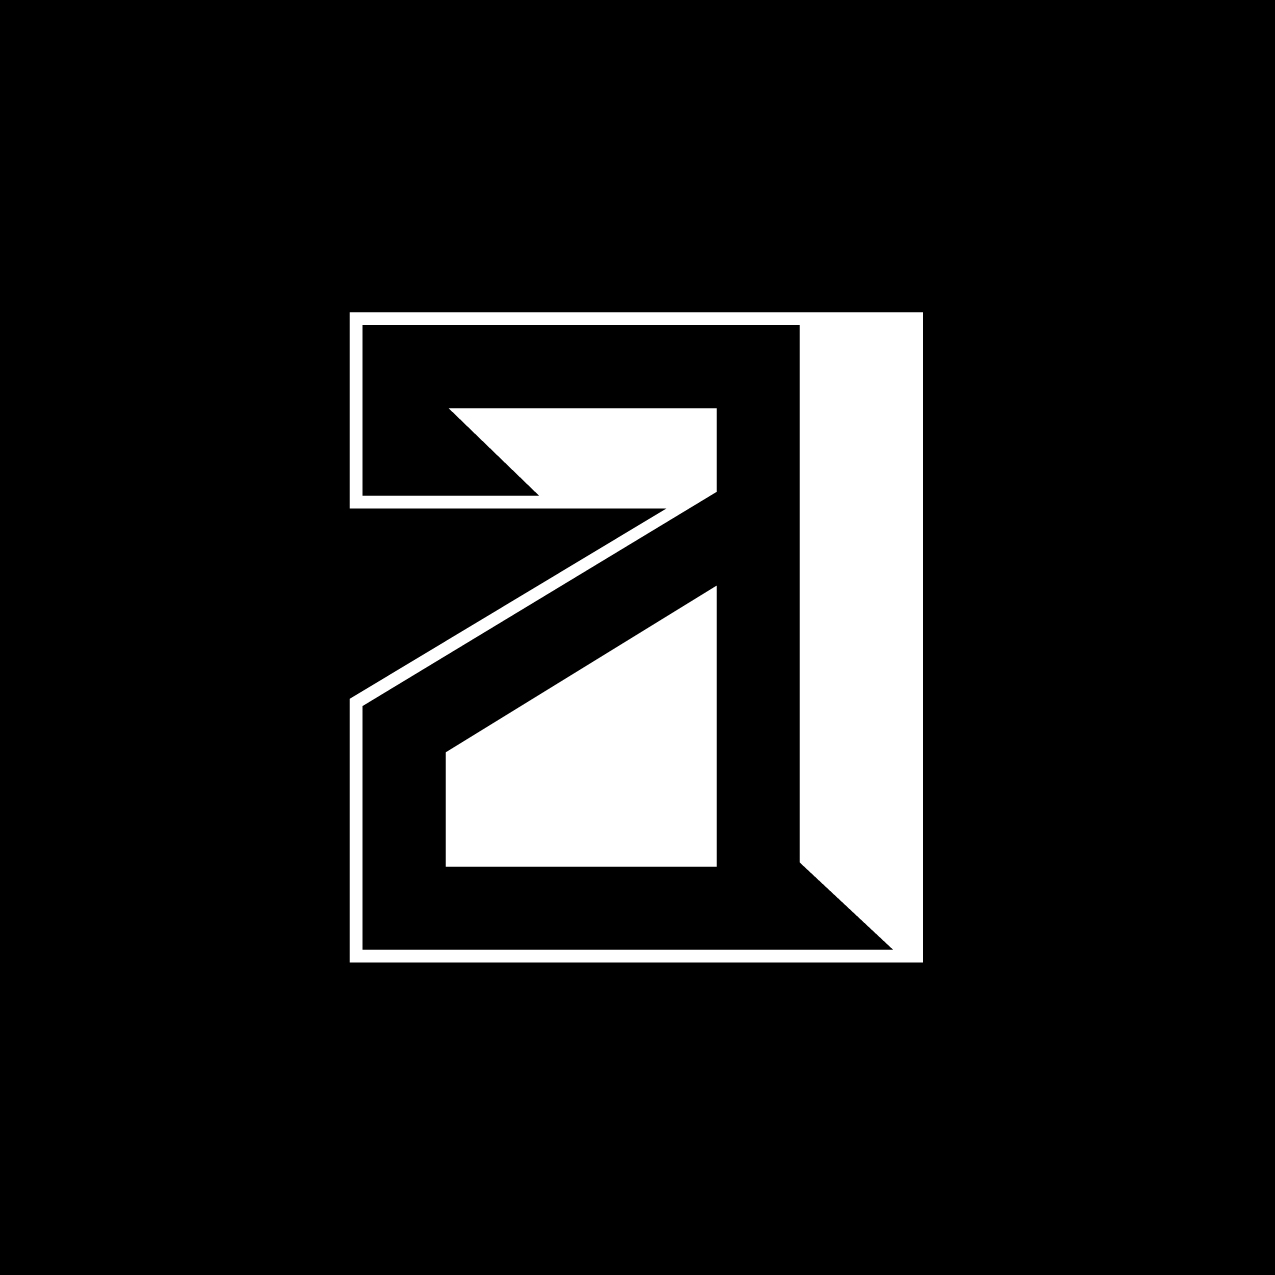 Letter A1 design by Furia